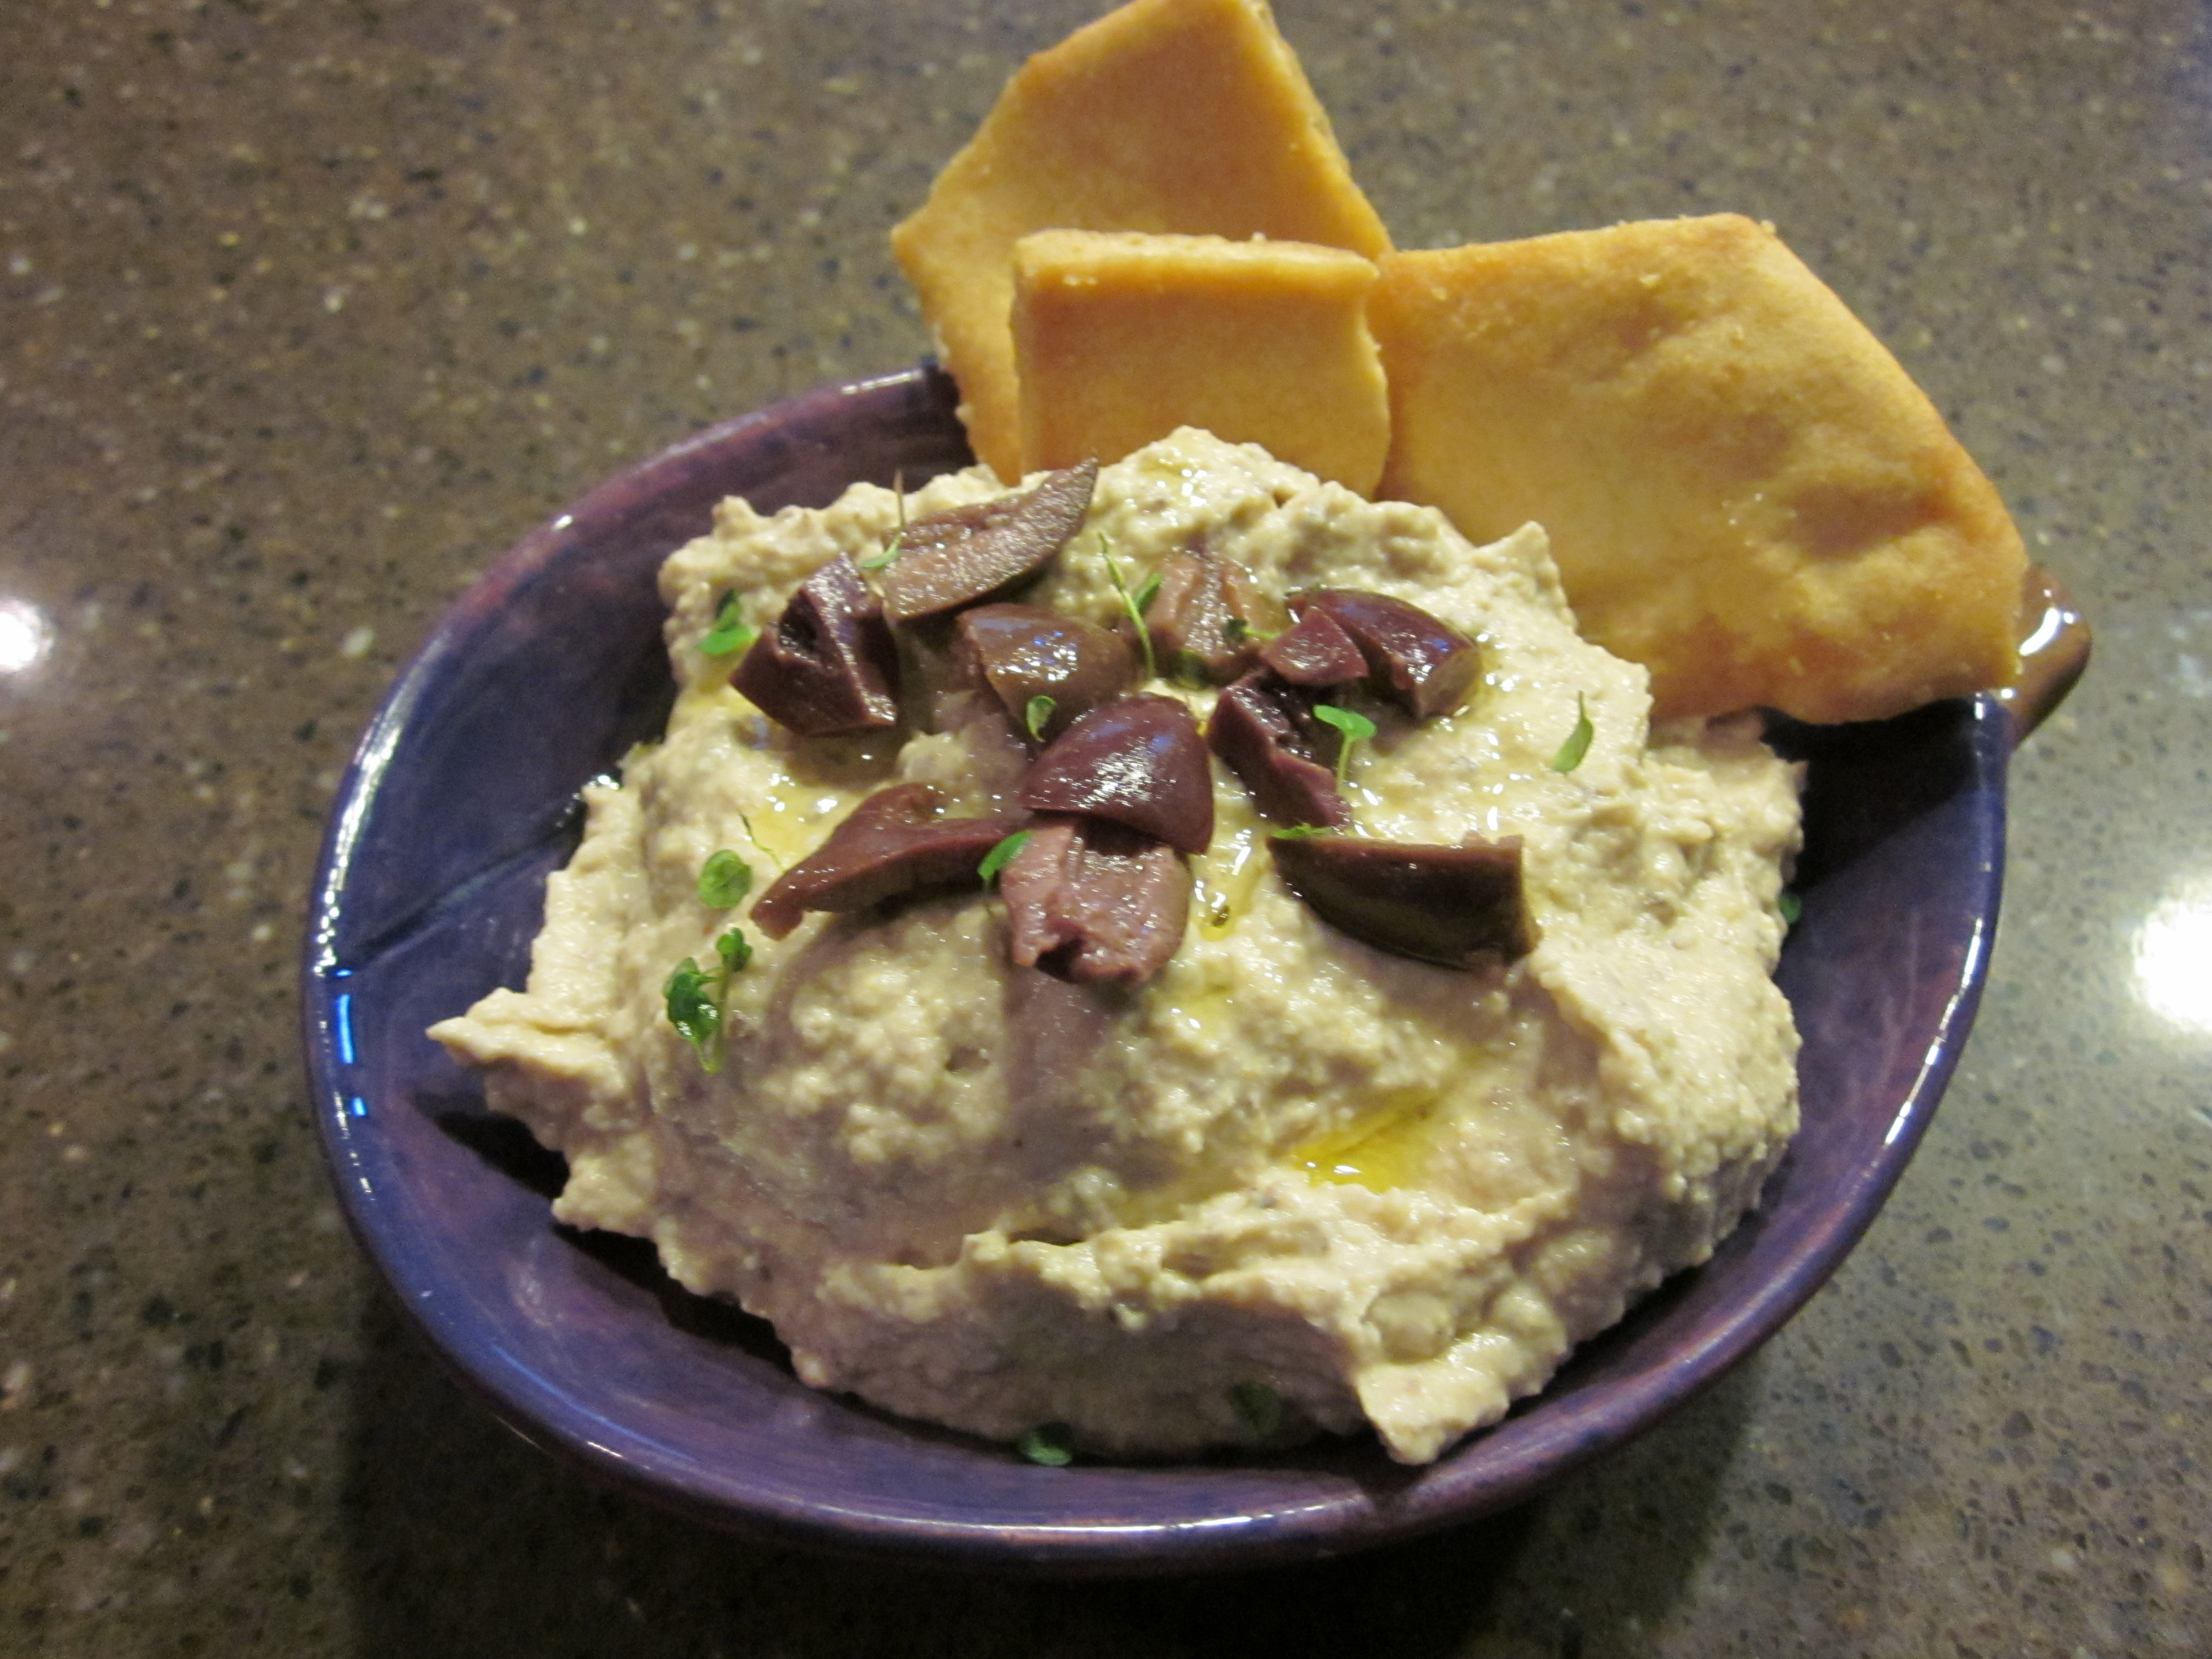 Roasted Meyer Lemon, Artichoke and Kalamata Hummus